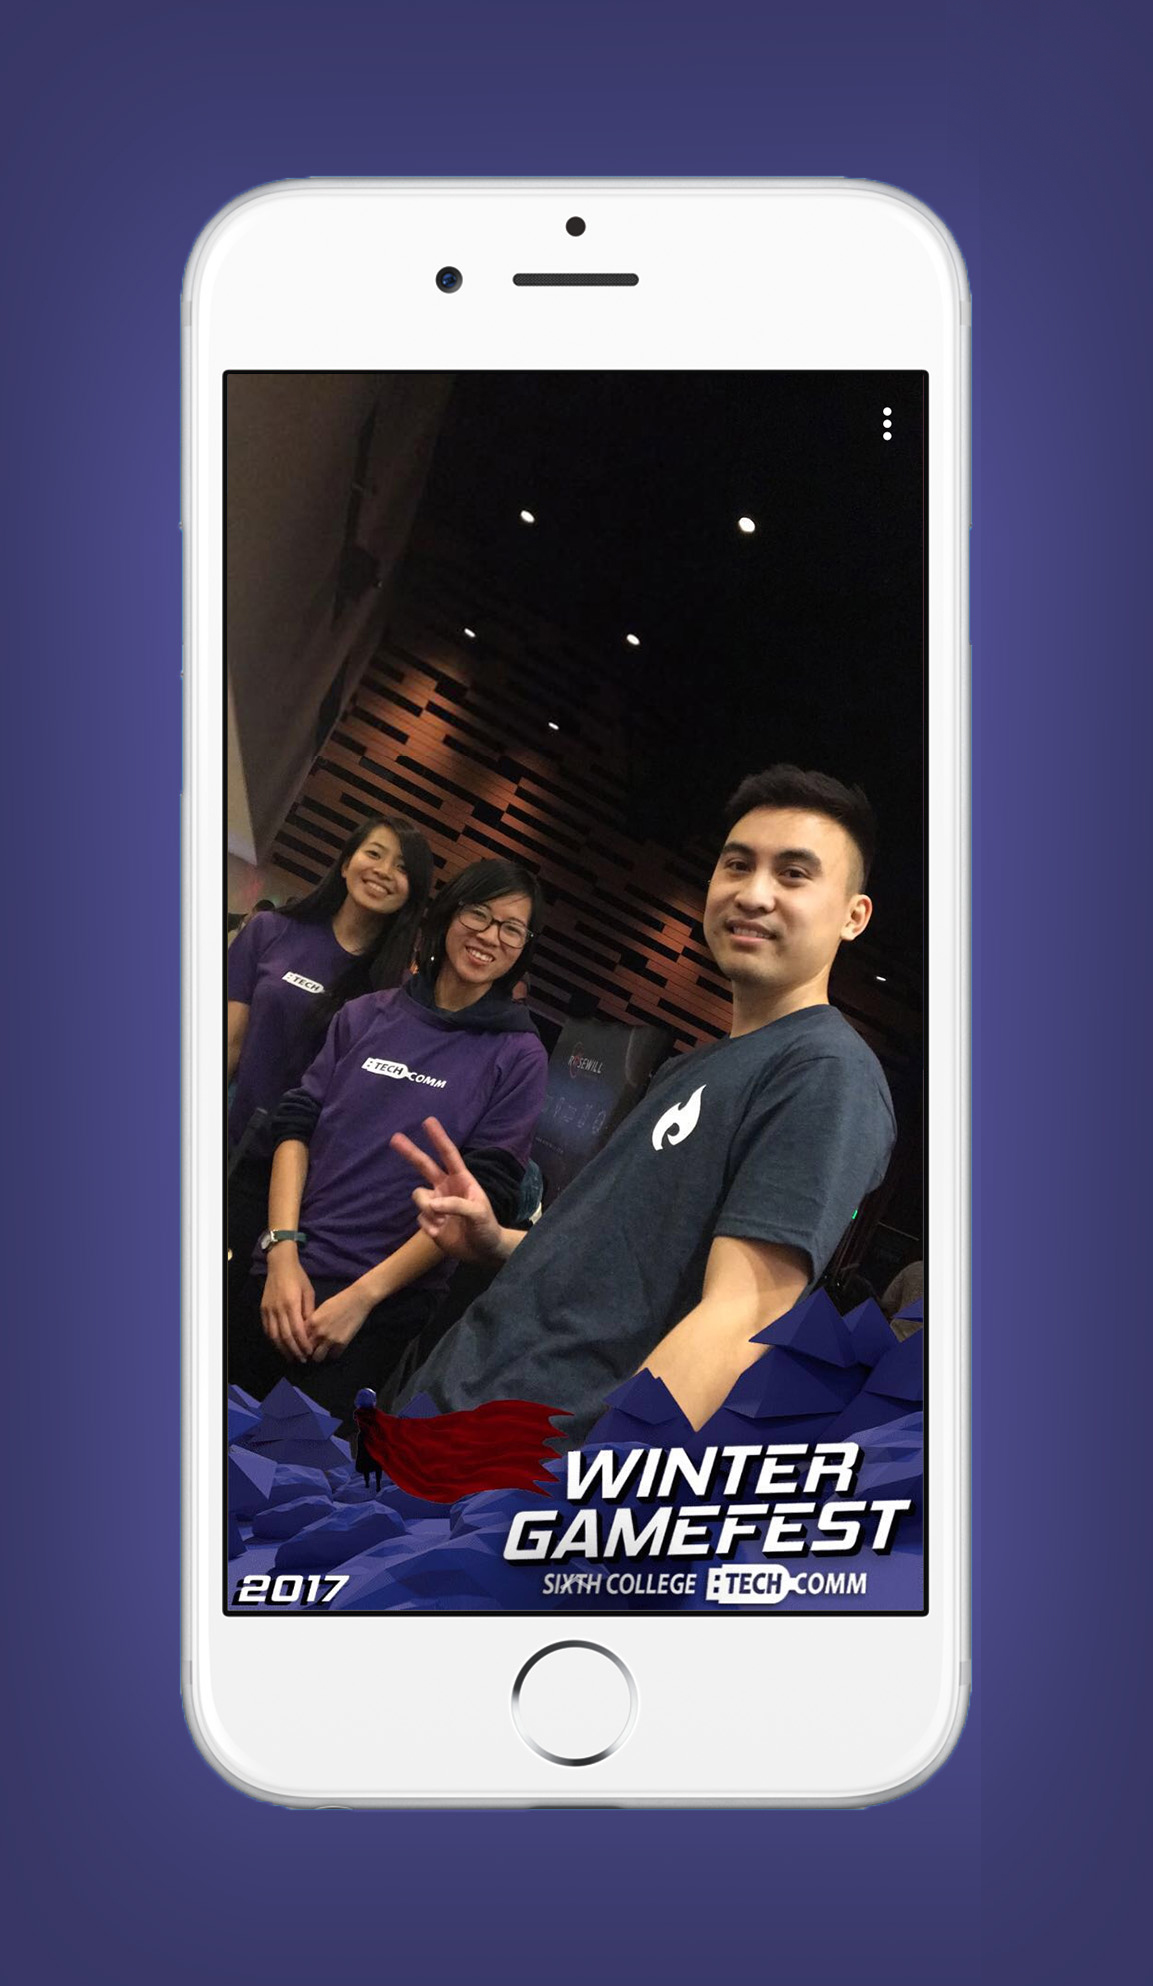 Official Winter GameFest 2017 SnapChat Filter used by attendees during the event.